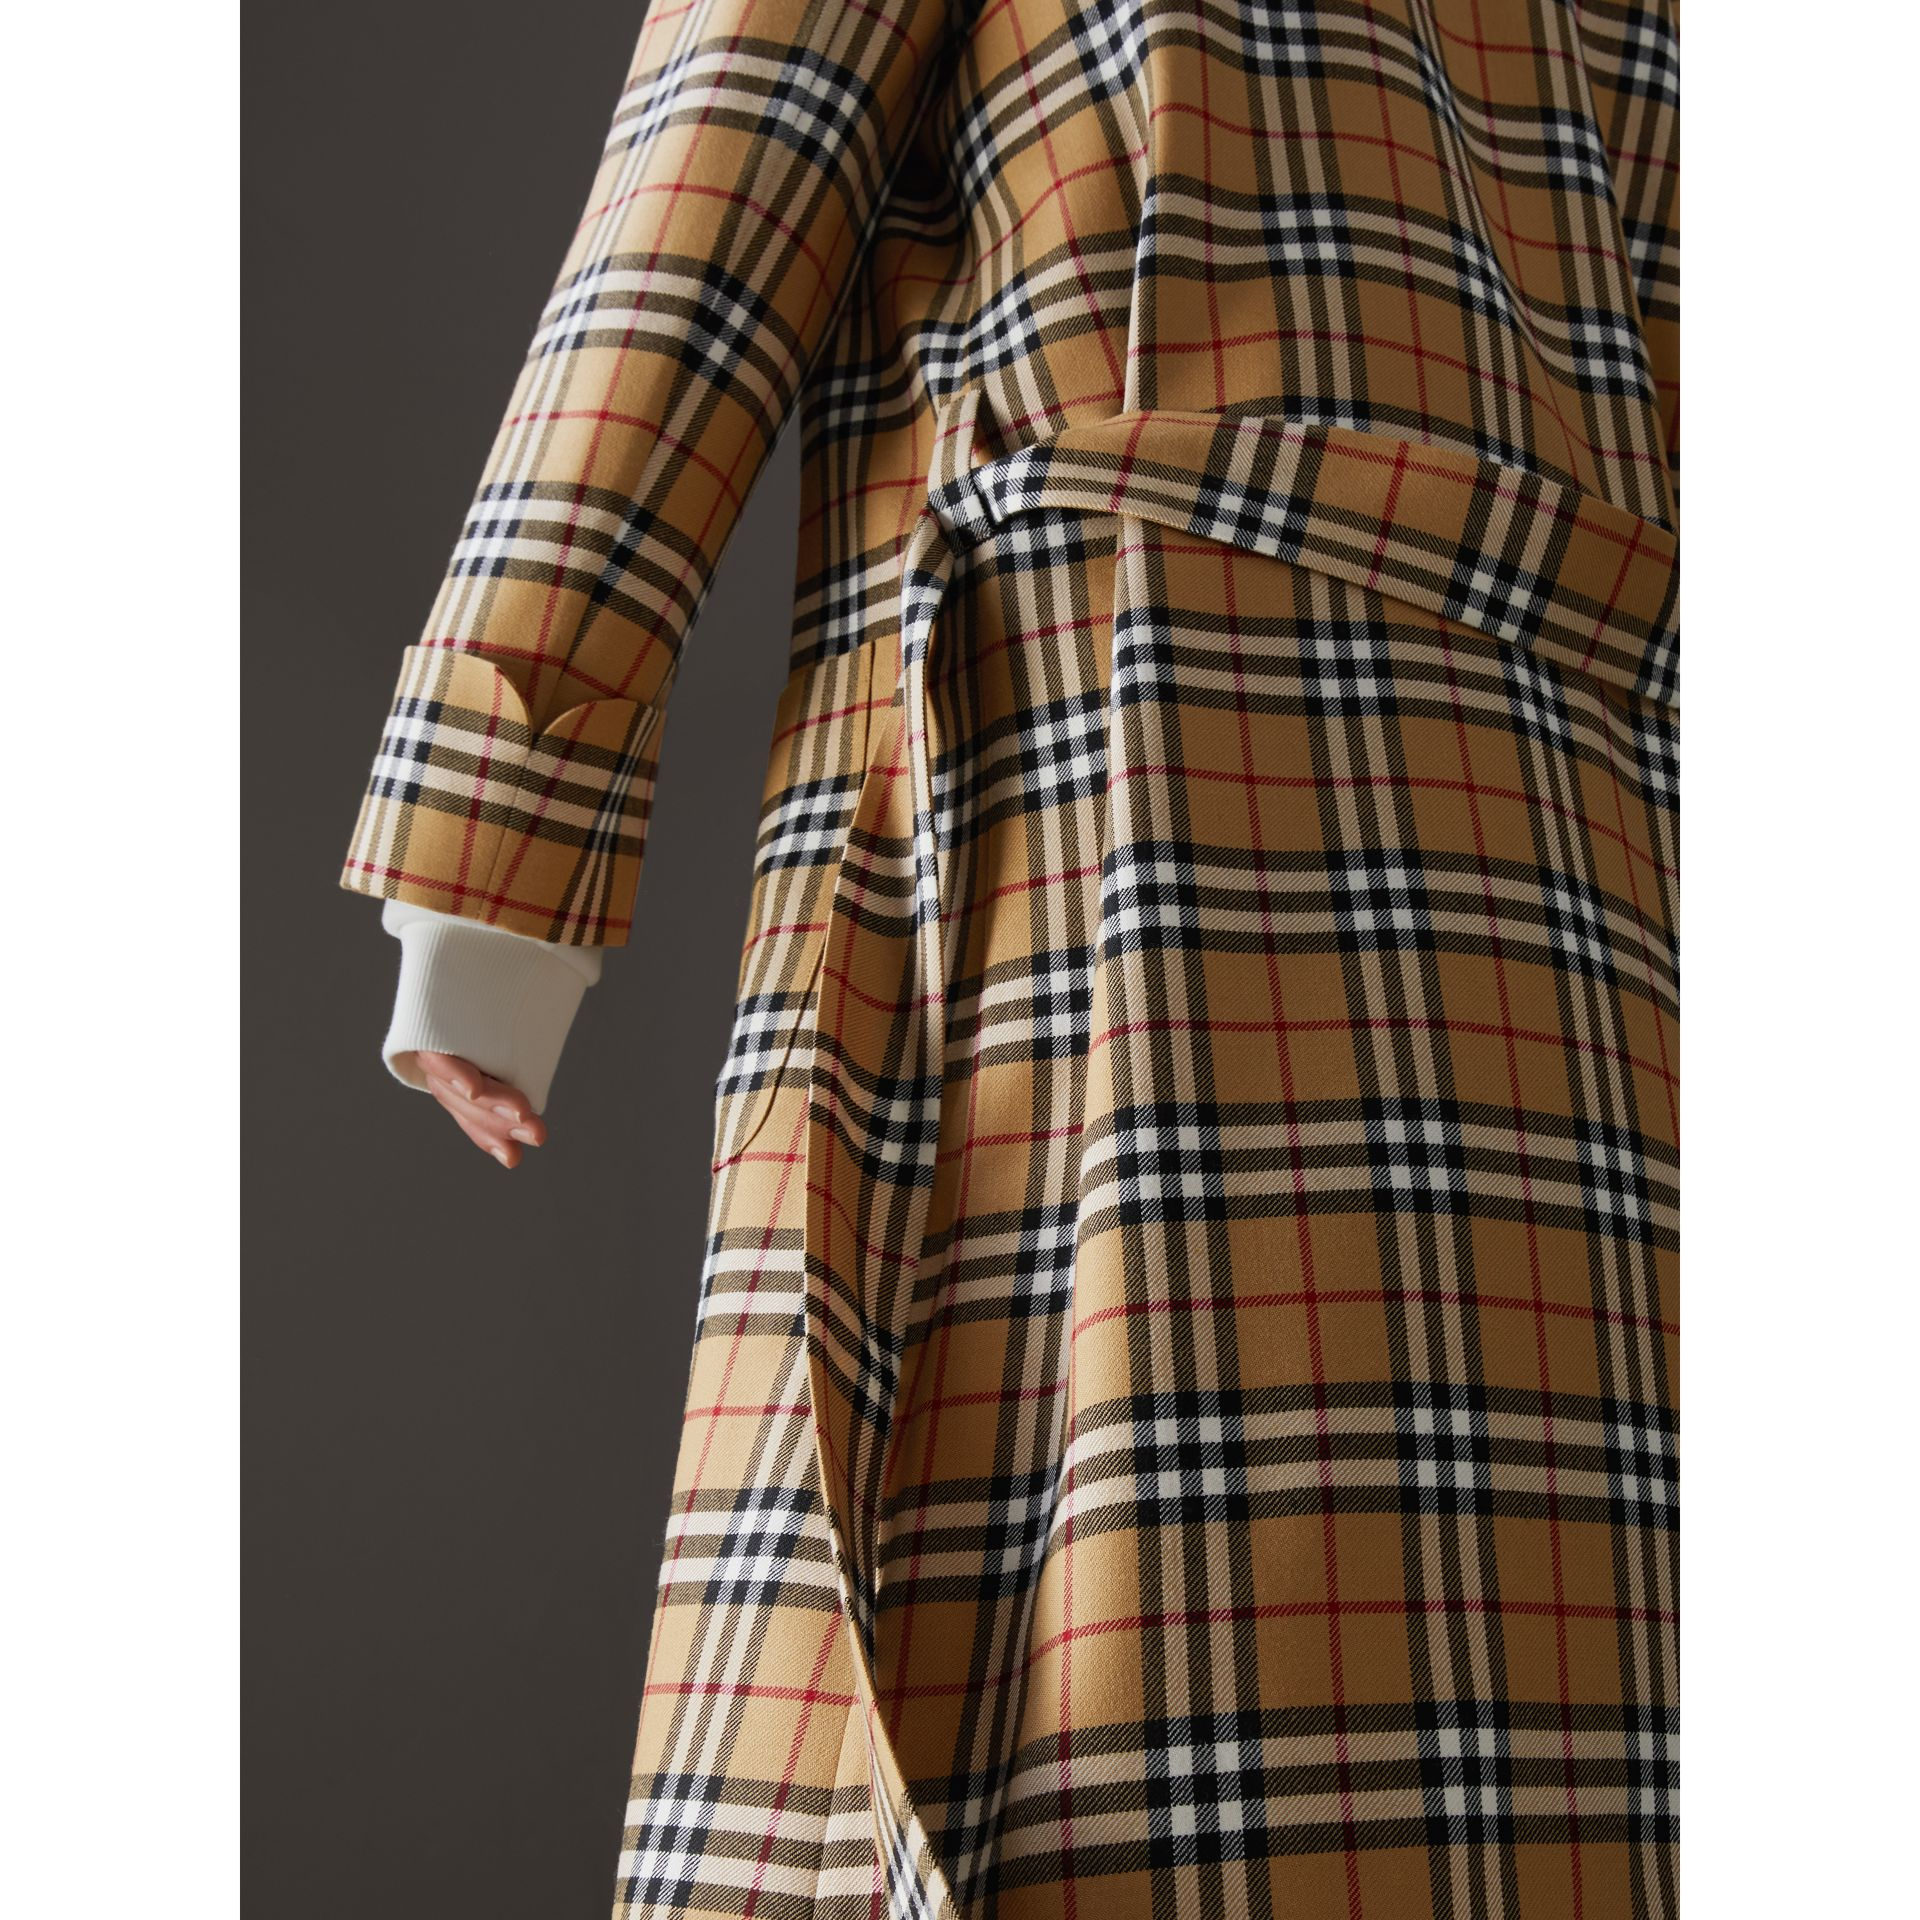 Manteau peignoir à motif Vintage check revisité (Jaune Antique) - Femme | Burberry Canada - photo de la galerie 1